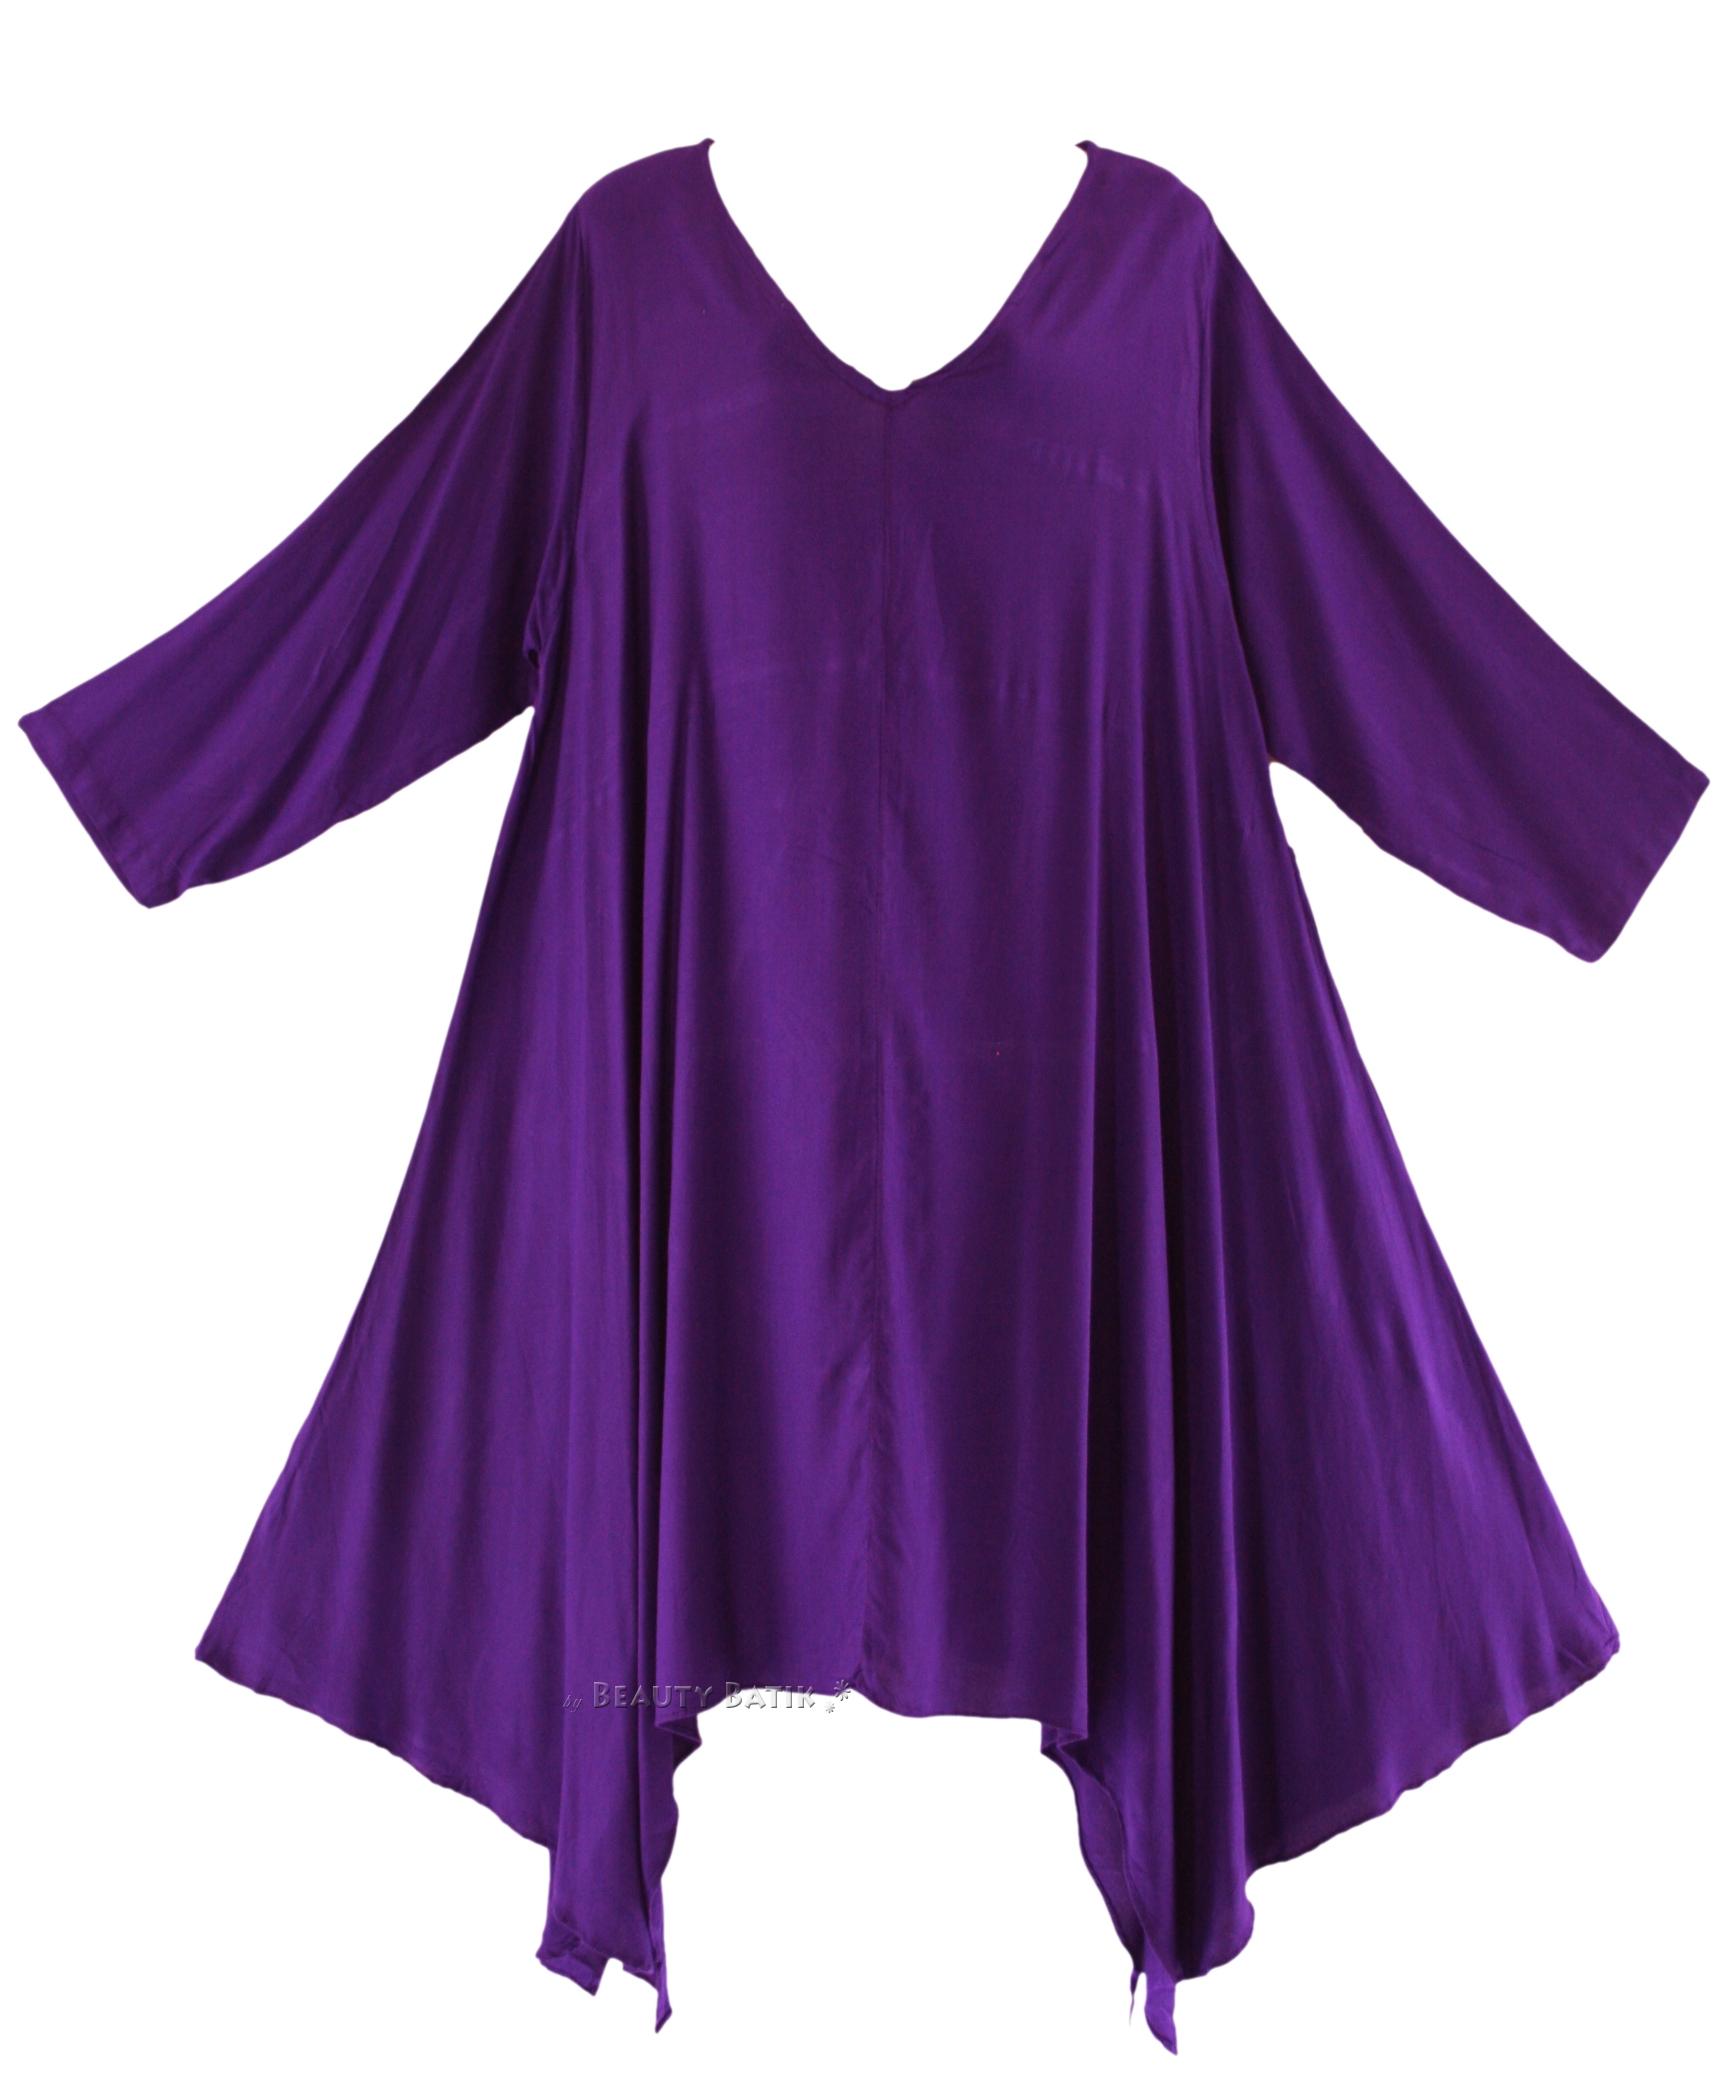 Shop Online at lemkecollier.ga for the Latest Womens Purple Shirts, Tunics, Blouses, Halter Tops & More Womens Tops. FREE SHIPPING AVAILABLE!